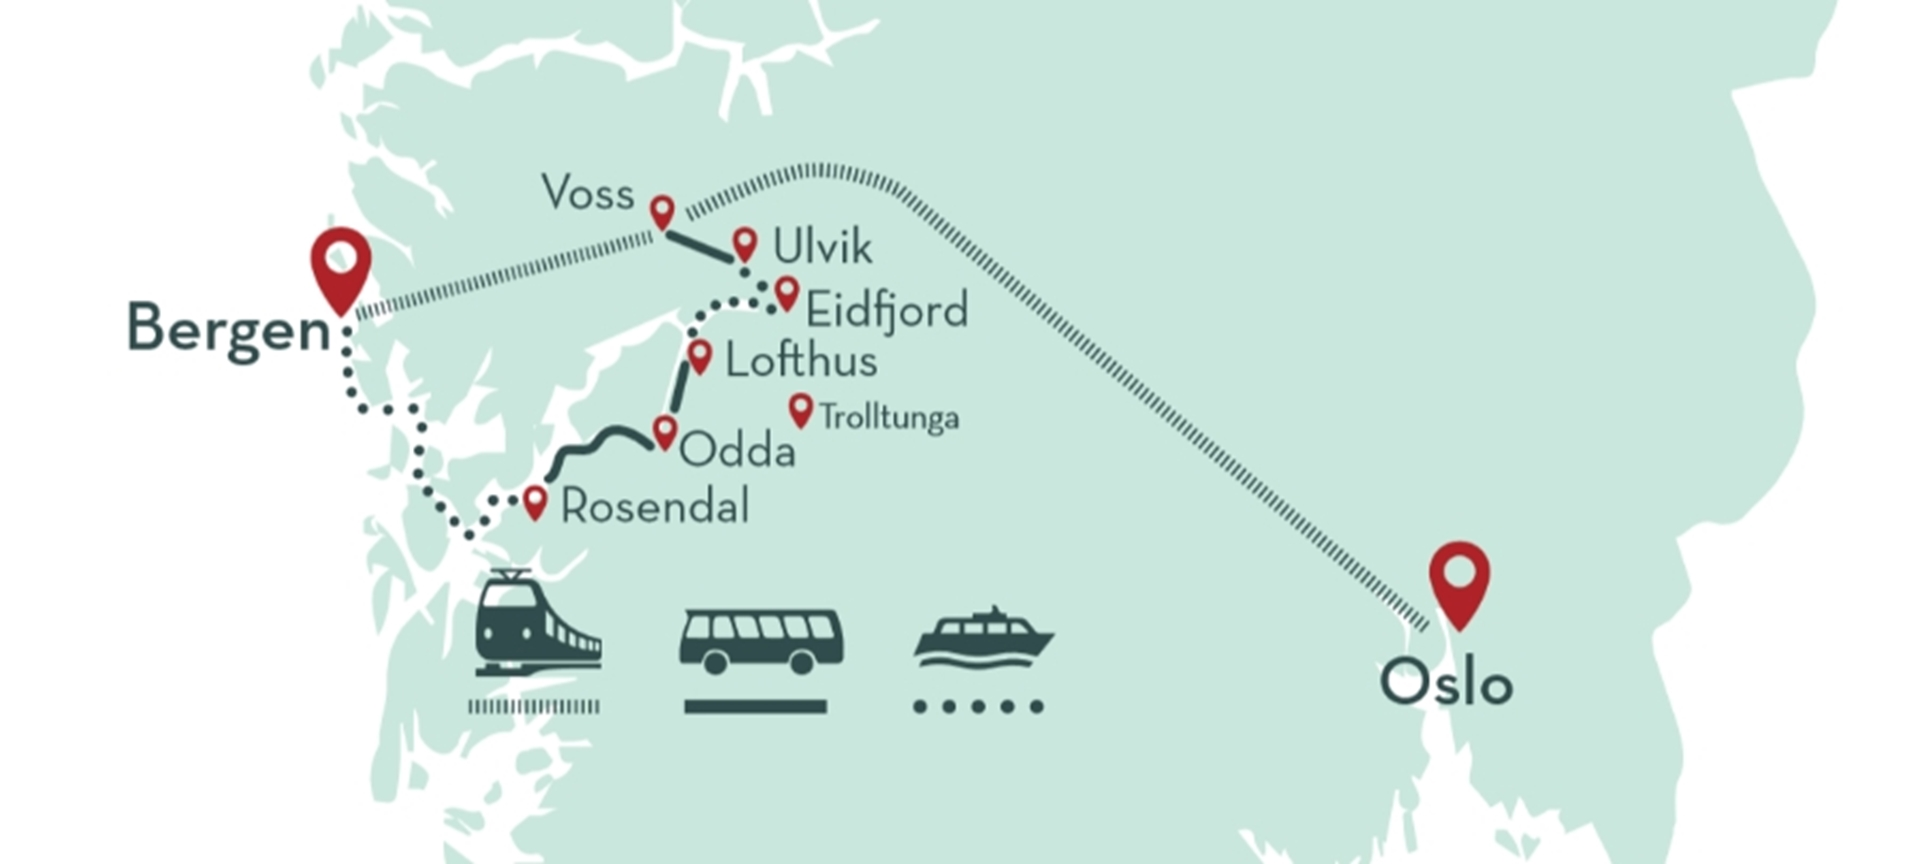 Hardangerfjord In A Nutshell Official Travel Guide To Norway - Norway map highlights